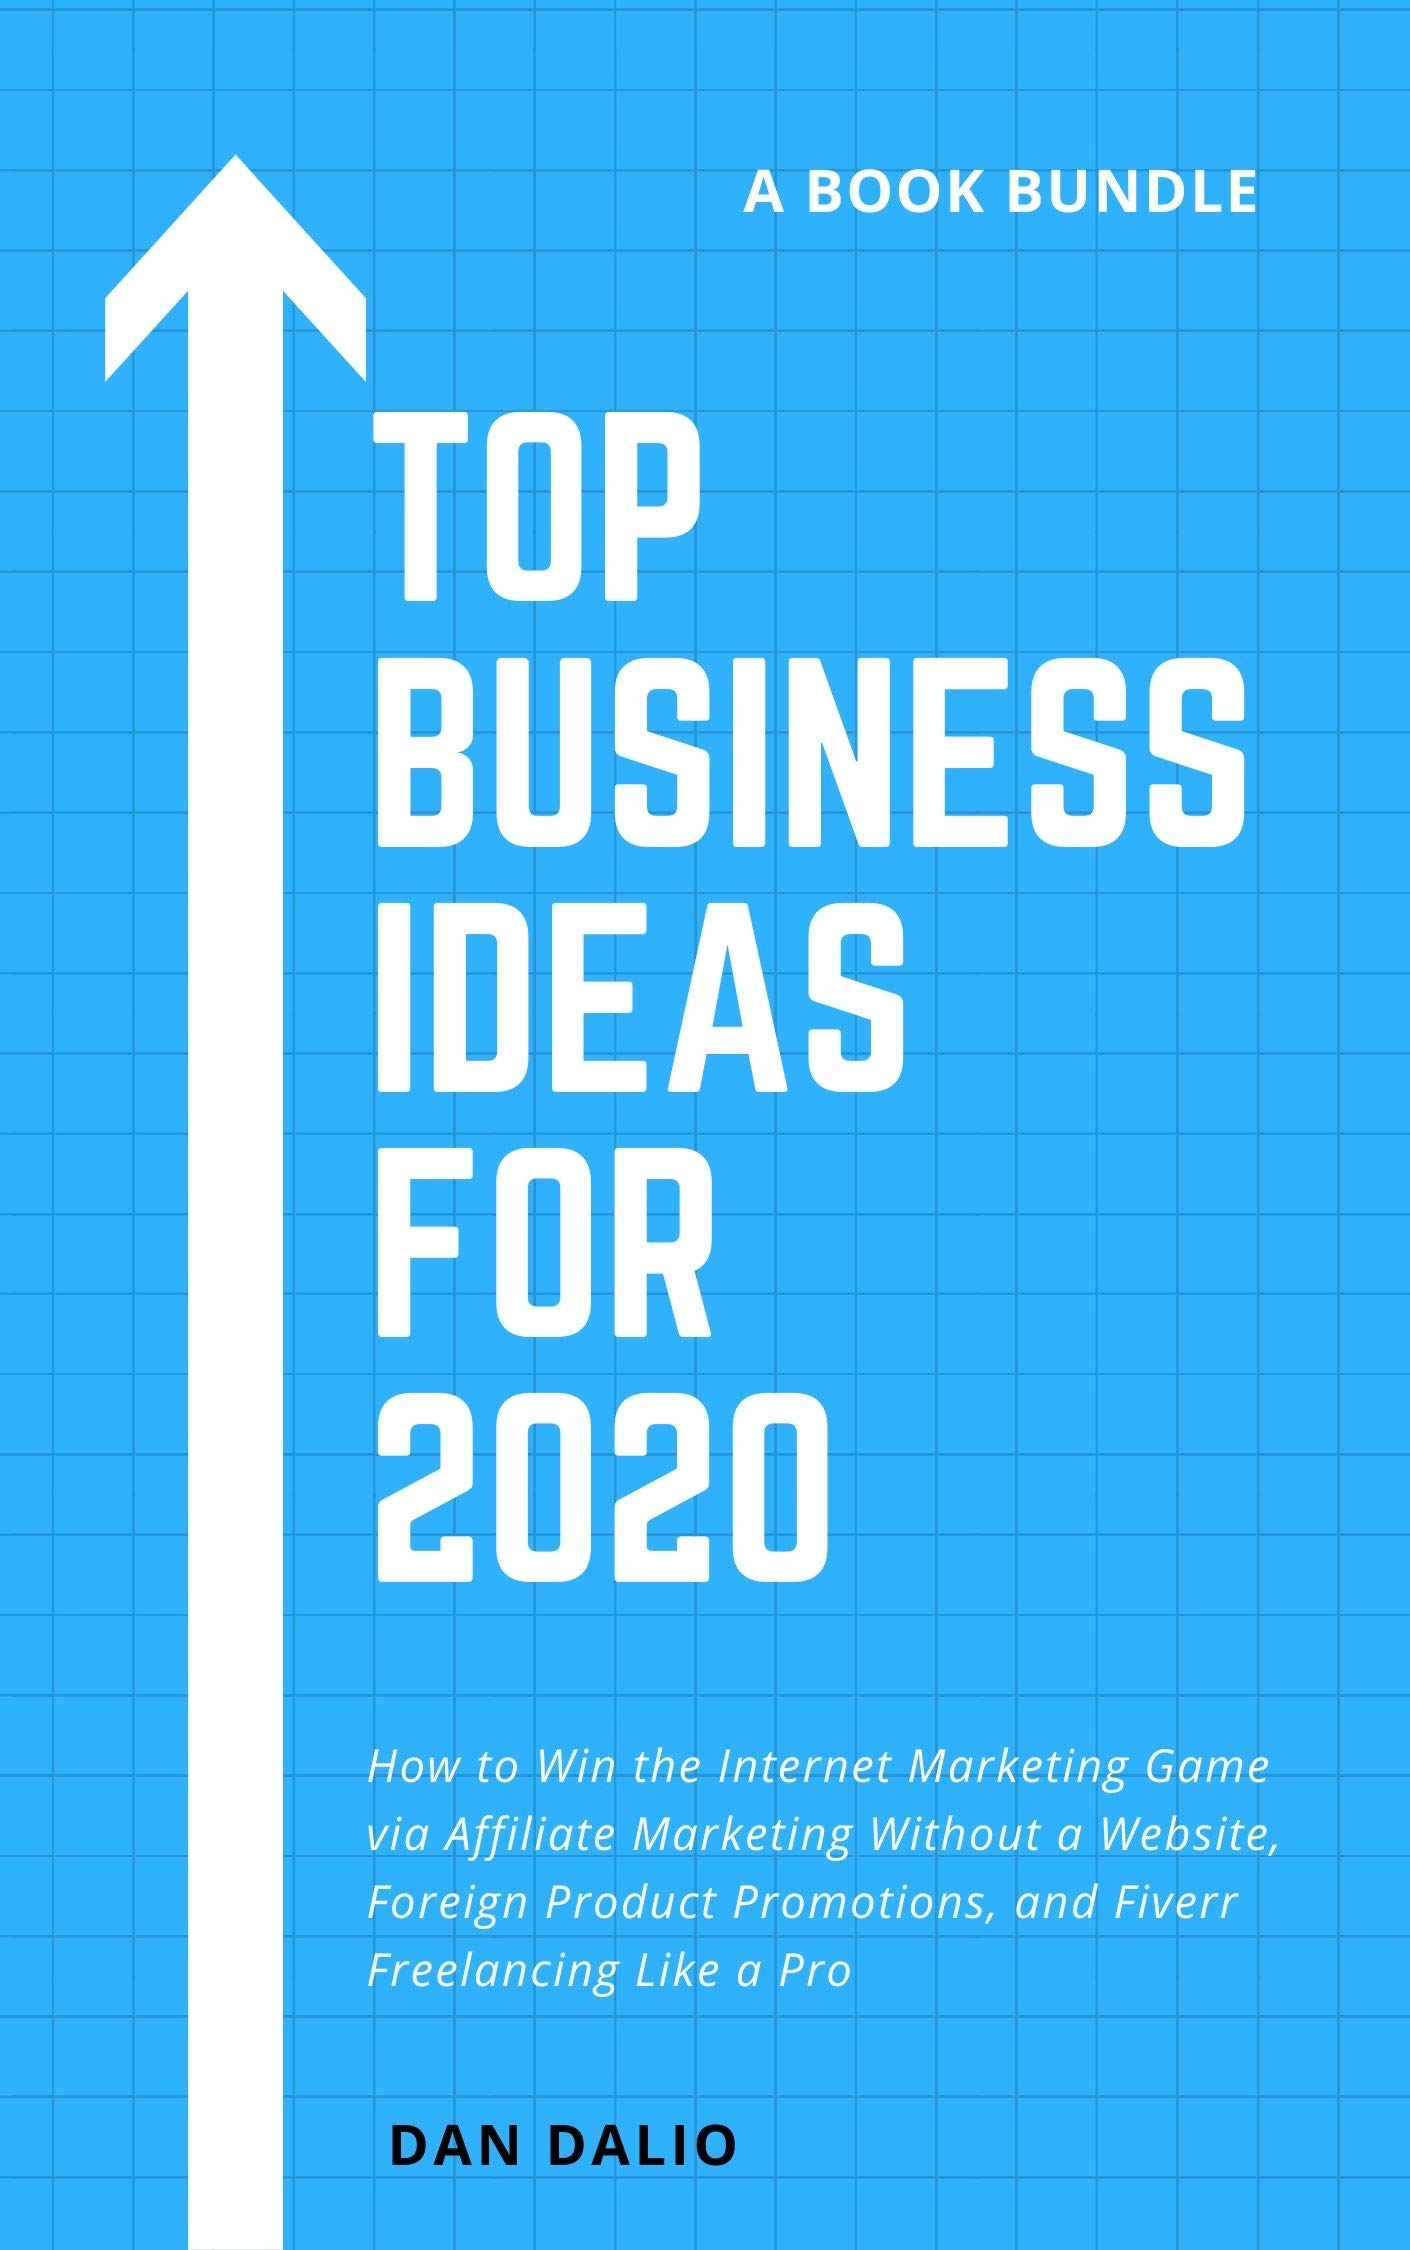 Top Business Ideas for 2020 (3 Book Bundle): How to Win the Internet Marketing Game via Affiliate Marketing Without a Website, Foreign Product Promotions, and Fiverr Freelancing Like a Pro